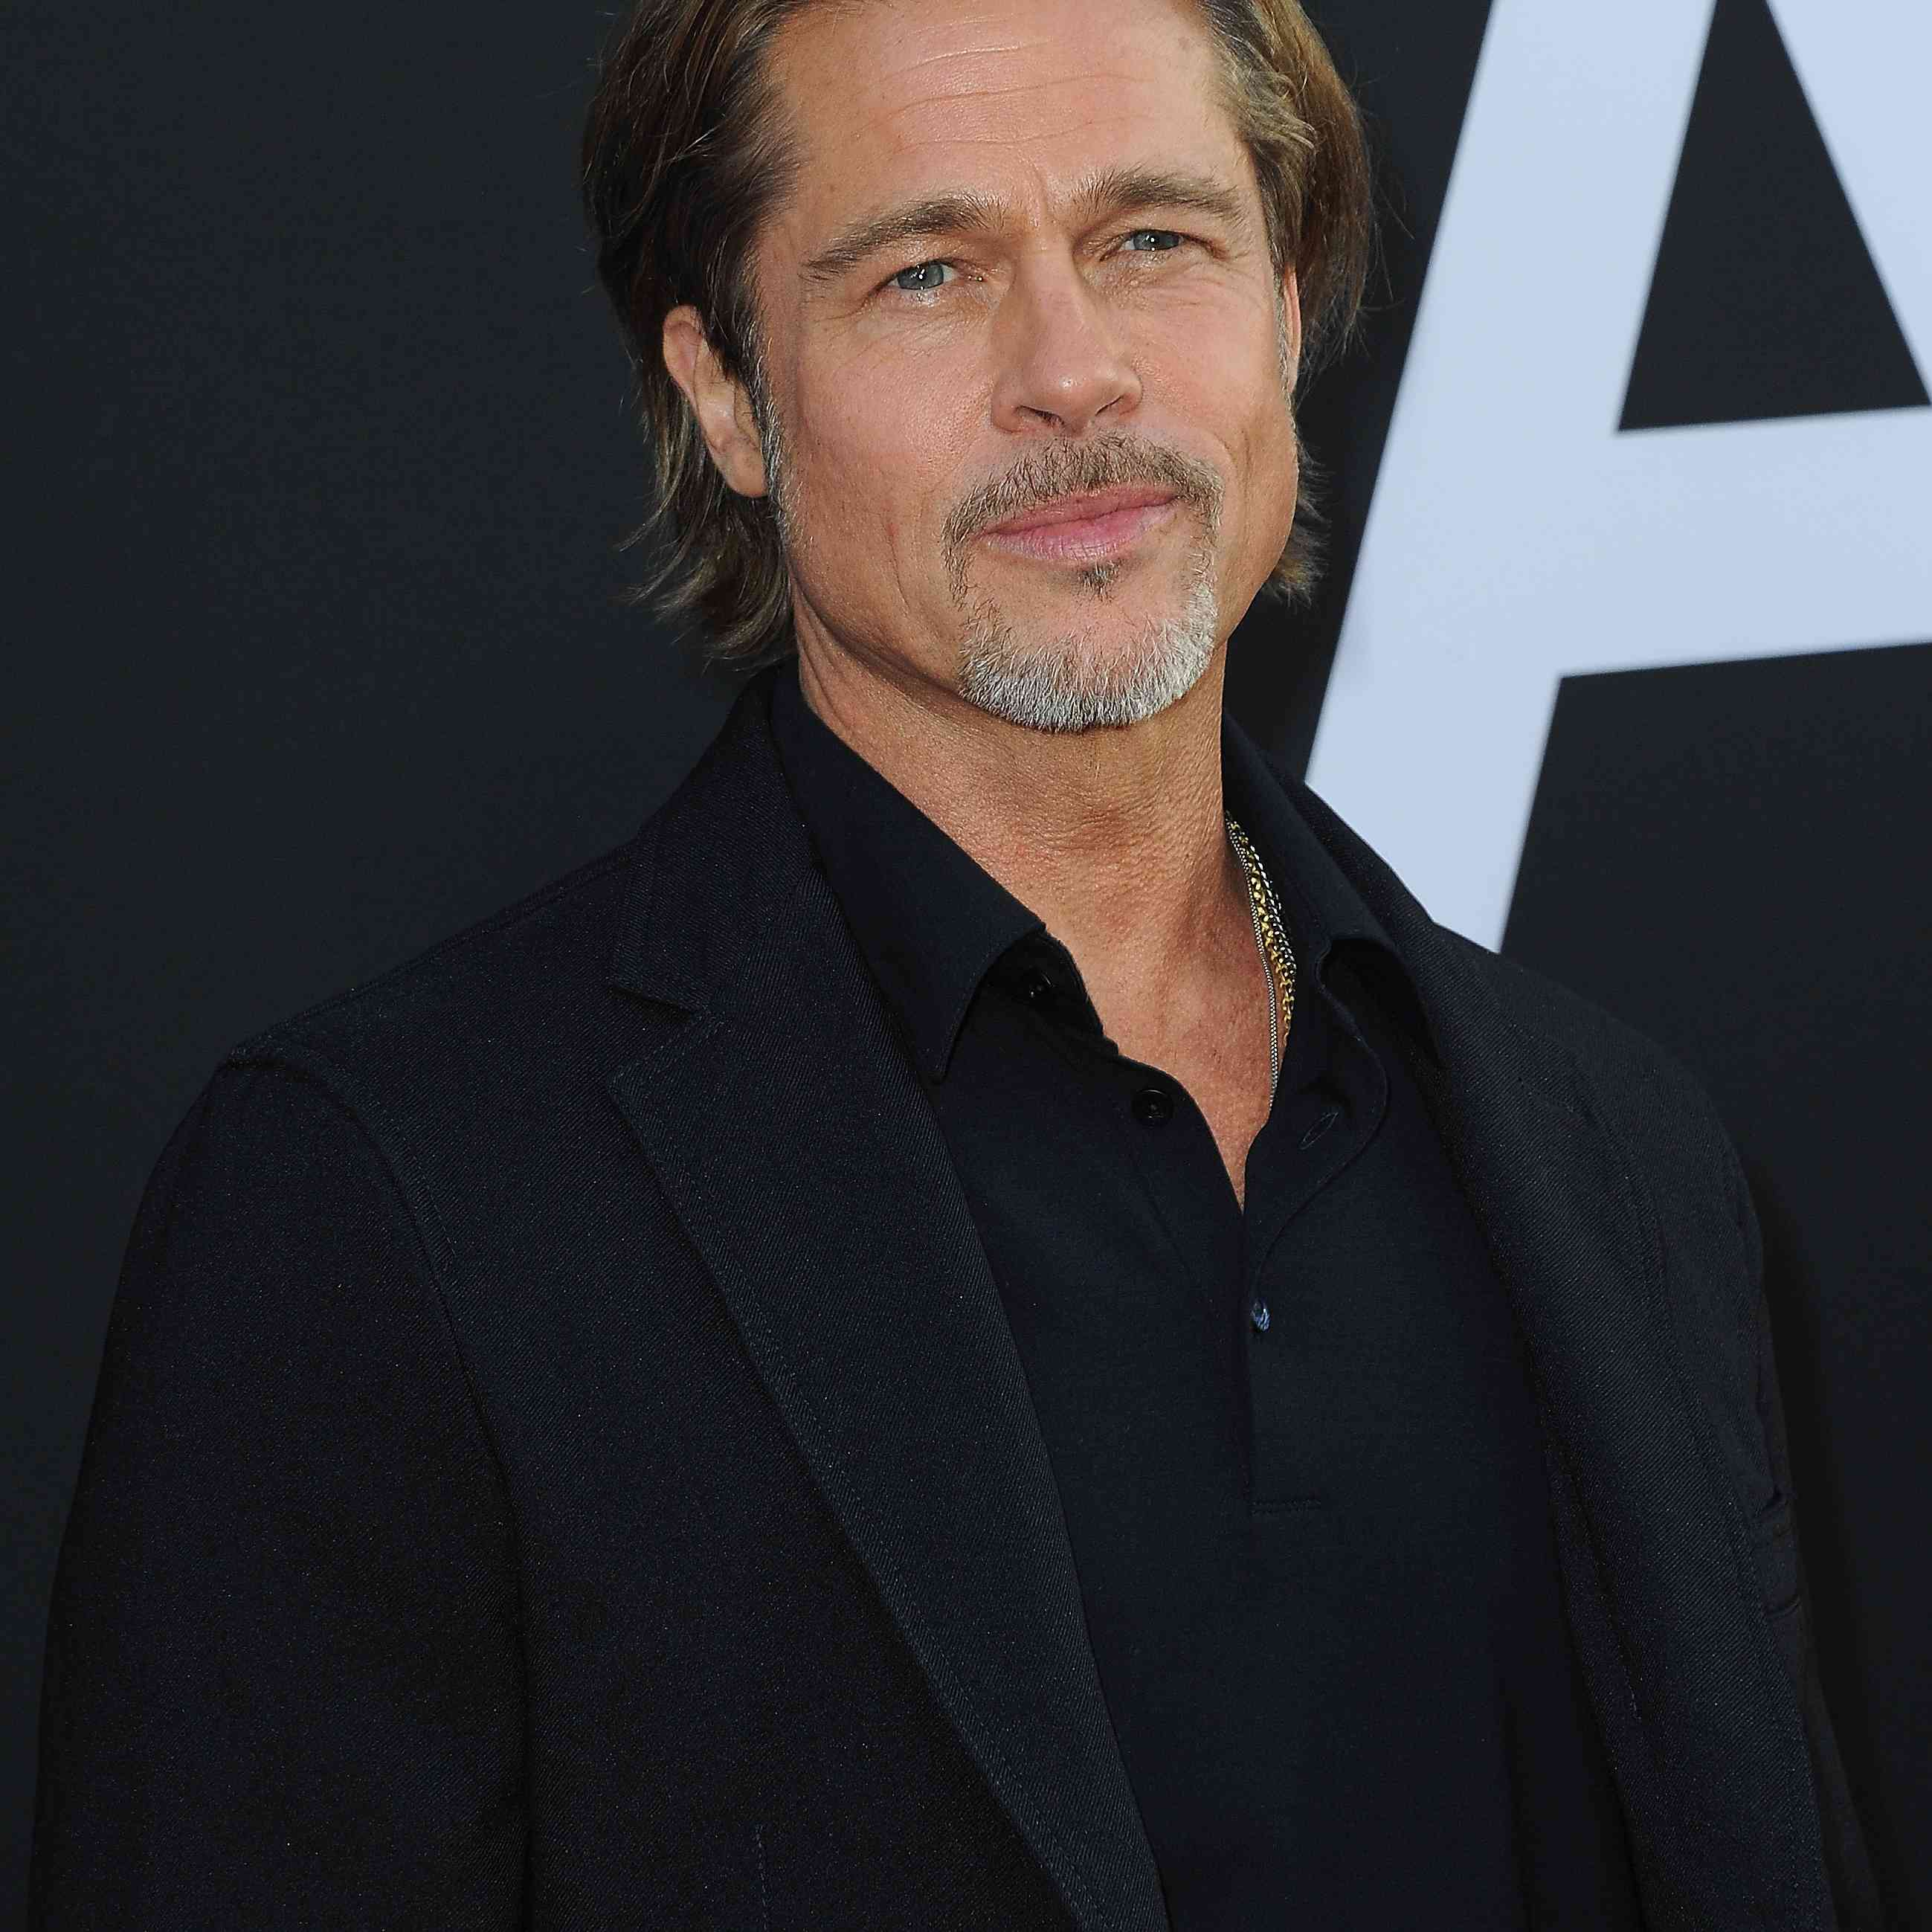 The 25 Best Haircuts For Men Over 40